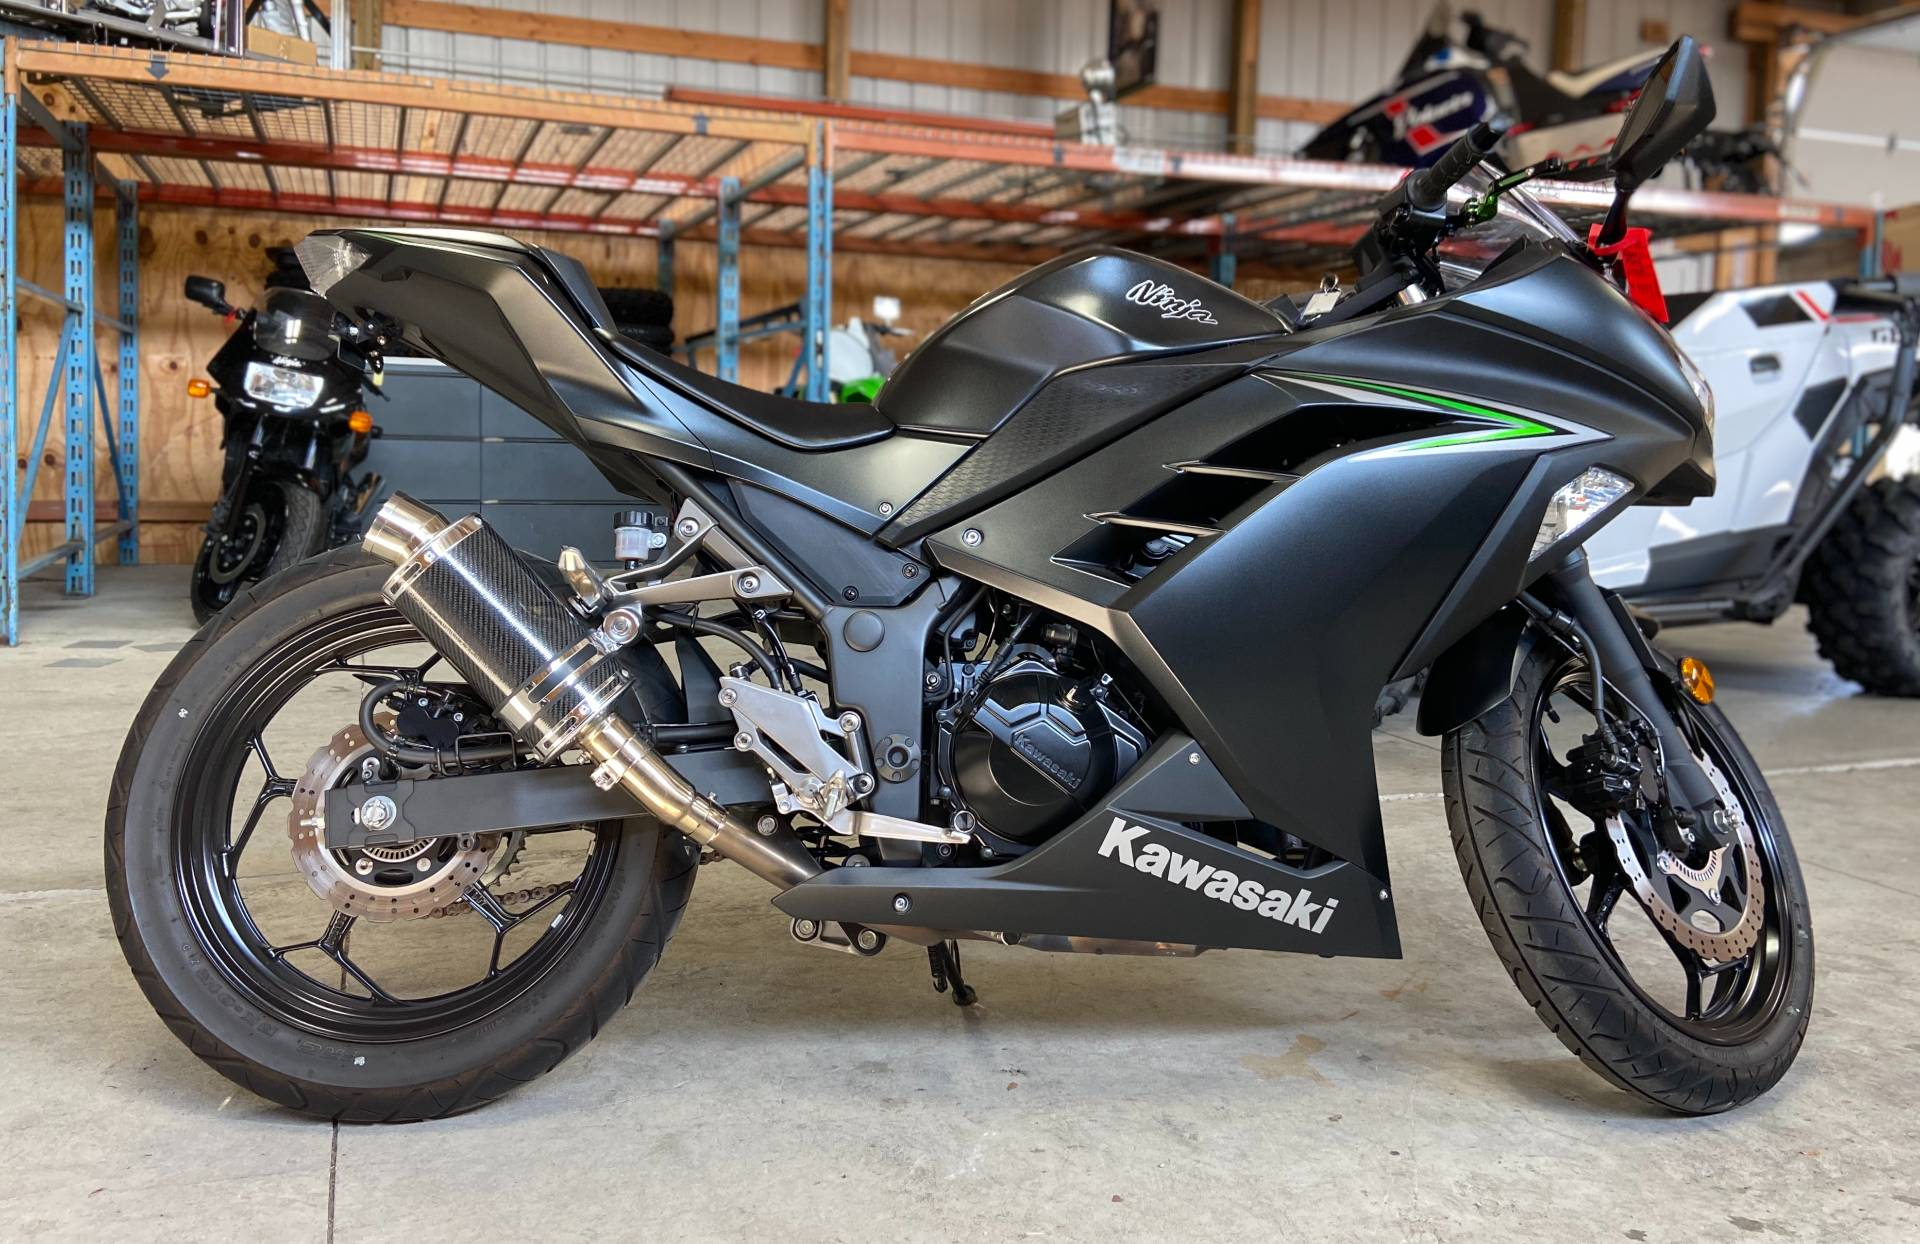 2016 Kawasaki Ninja 300 ABS in Oak Creek, Wisconsin - Photo 6